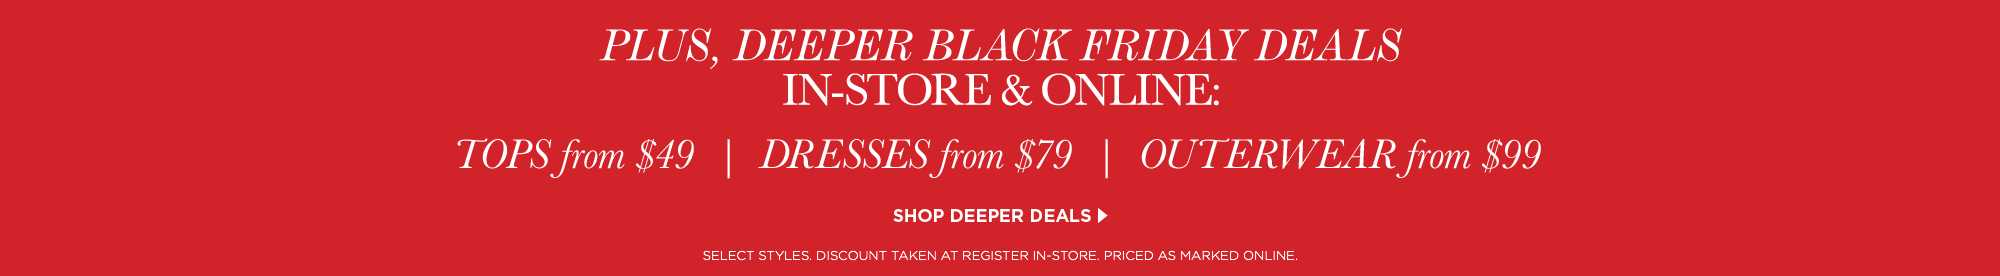 Deeper Black Friday Deals